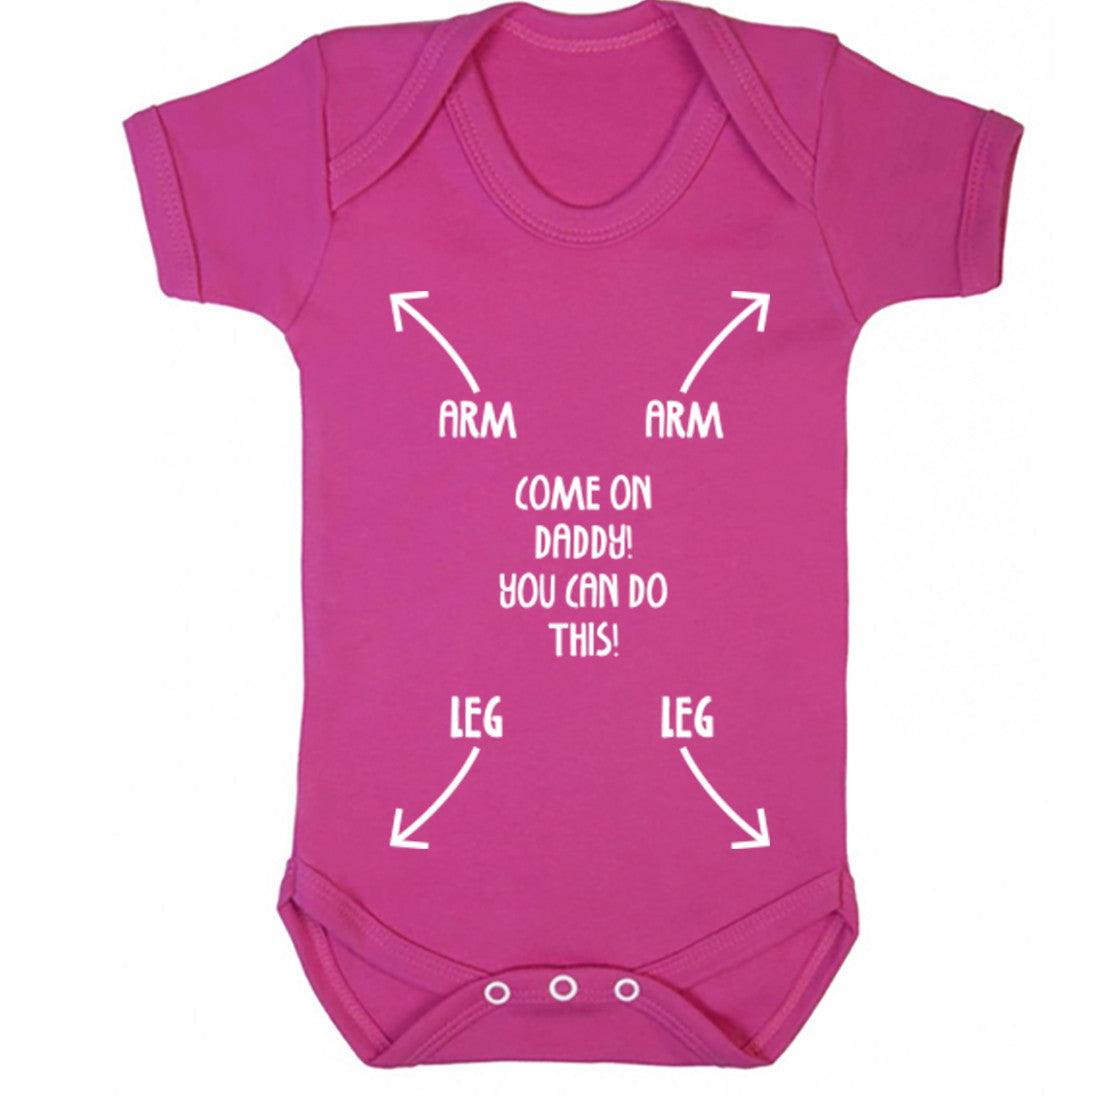 Come On Daddy You Can Do This Baby Vest K0368 - Illustrated Identity Ltd.